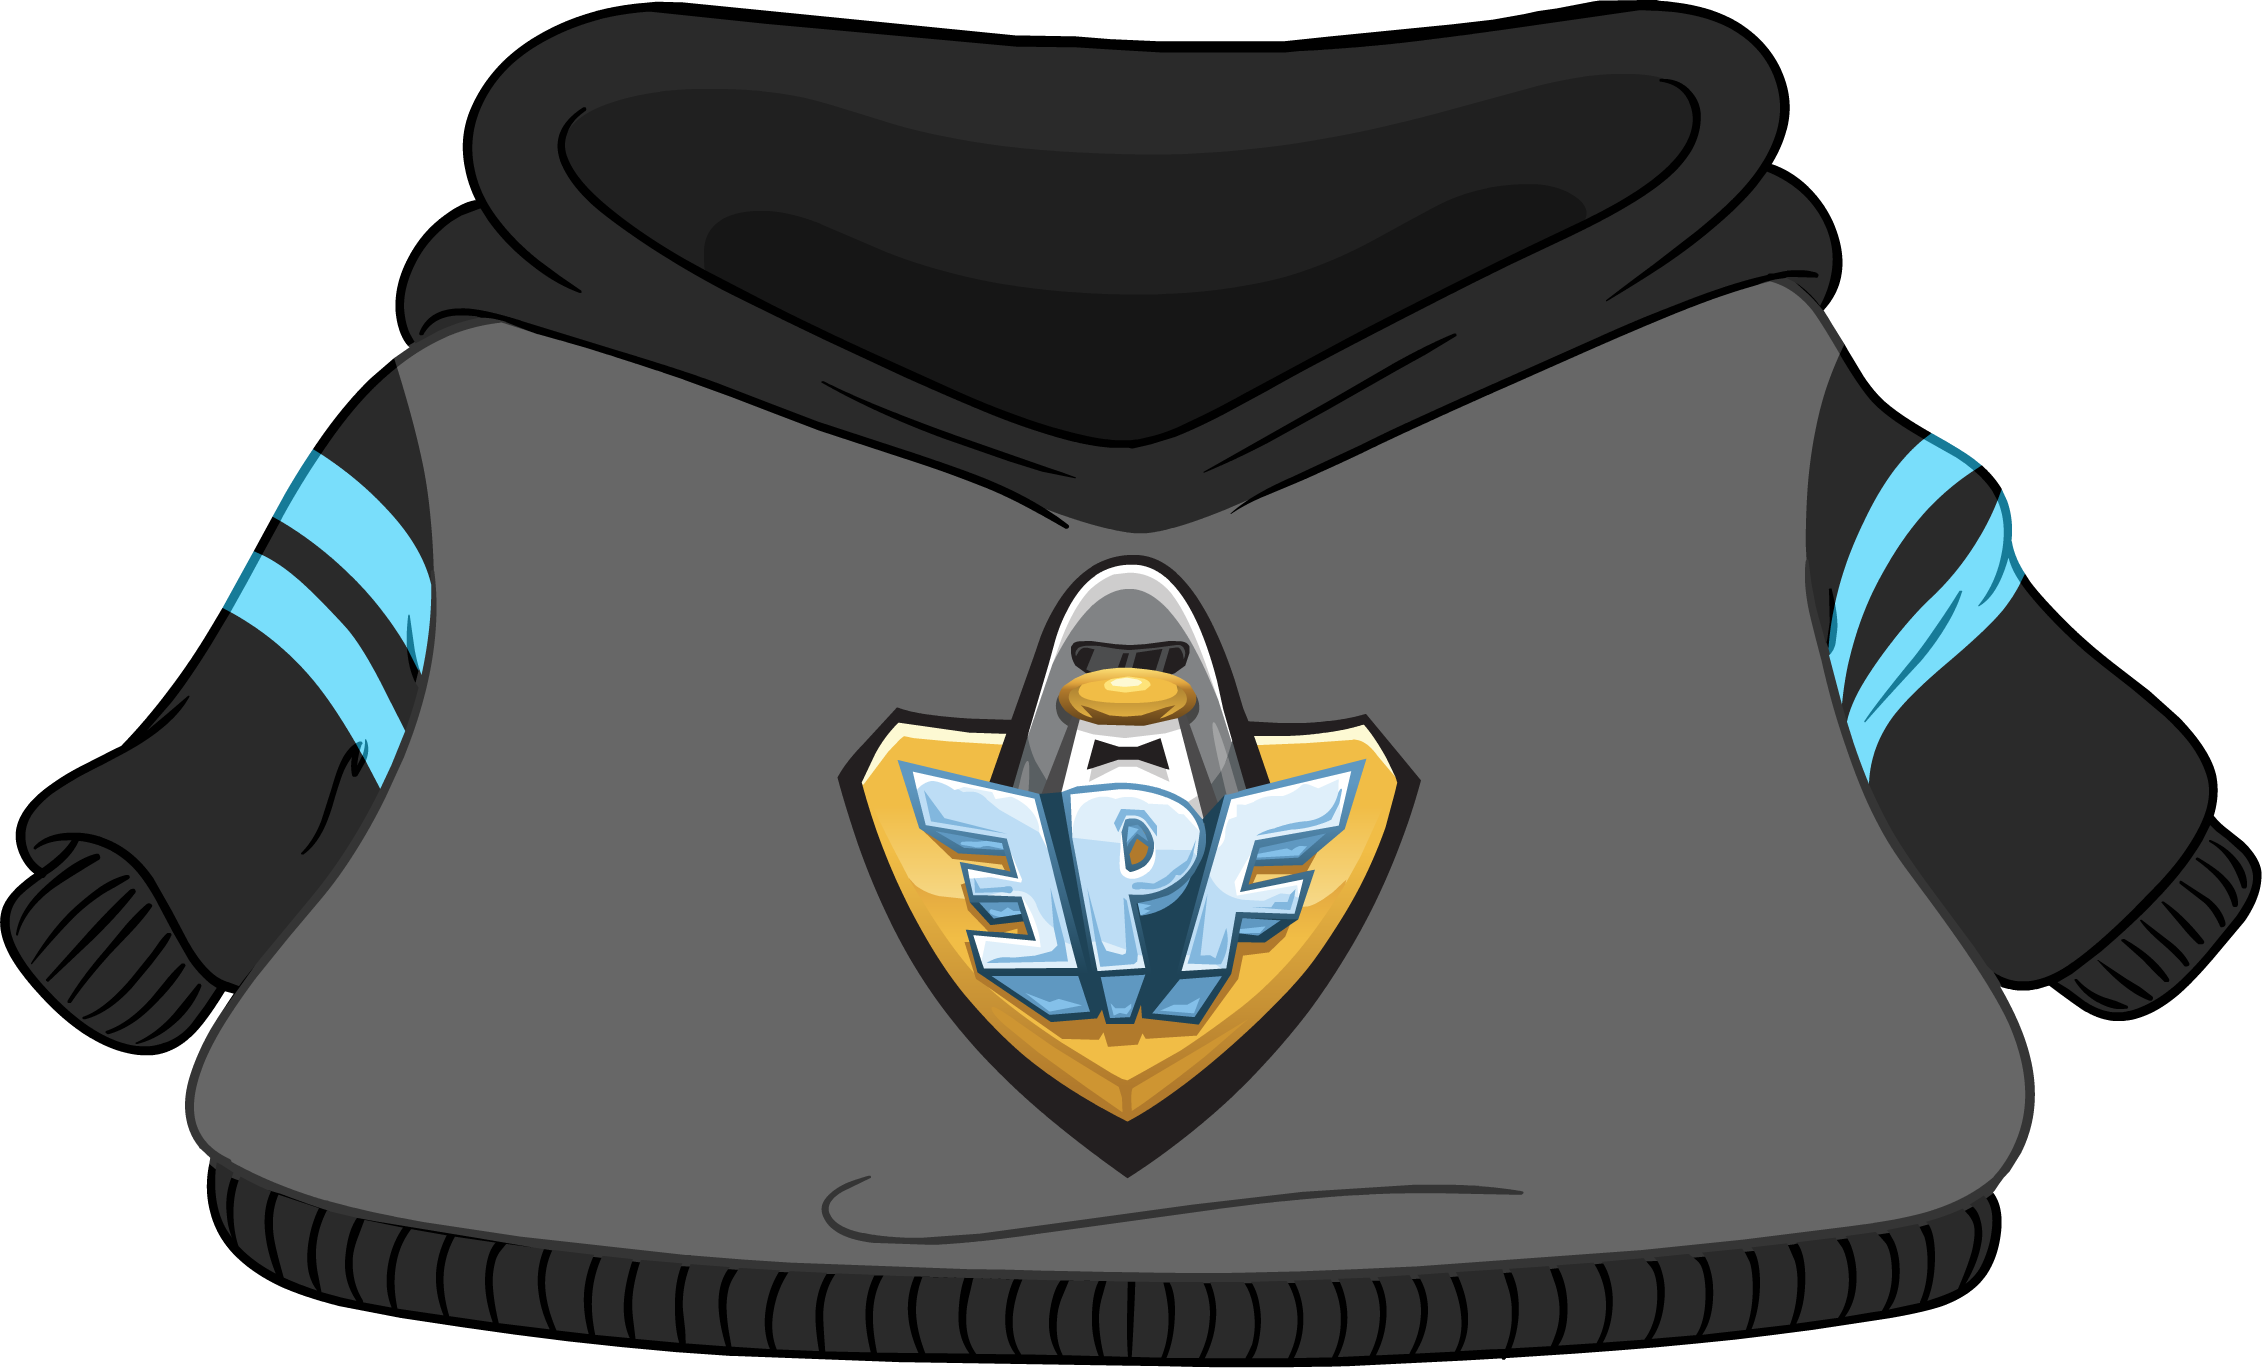 EPF Workout Hoodie